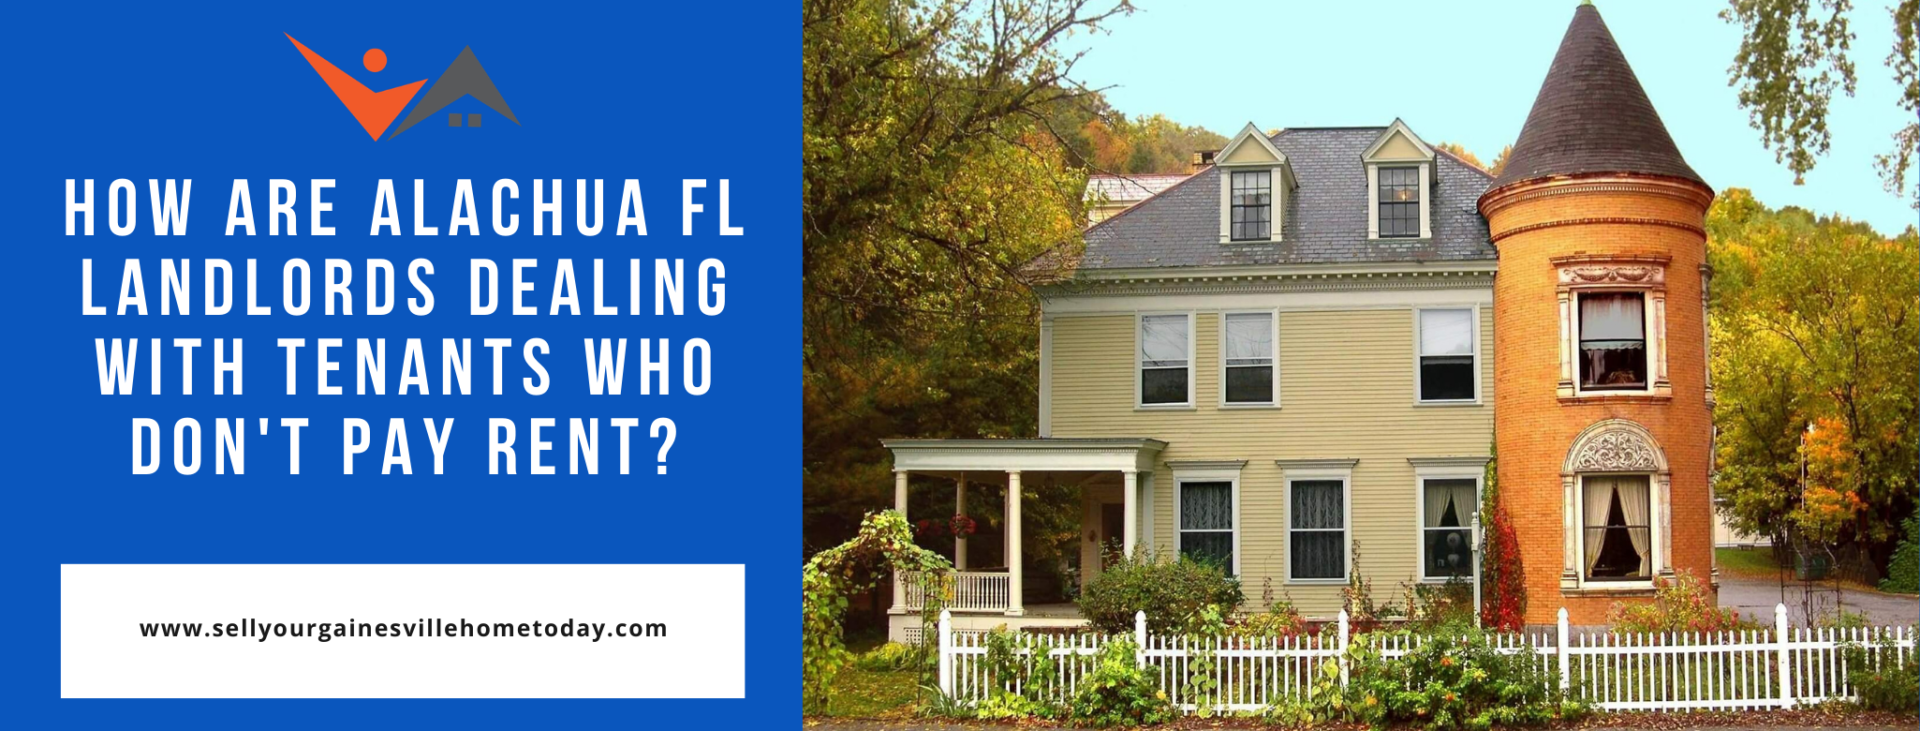 We buy properties in Alachua FL